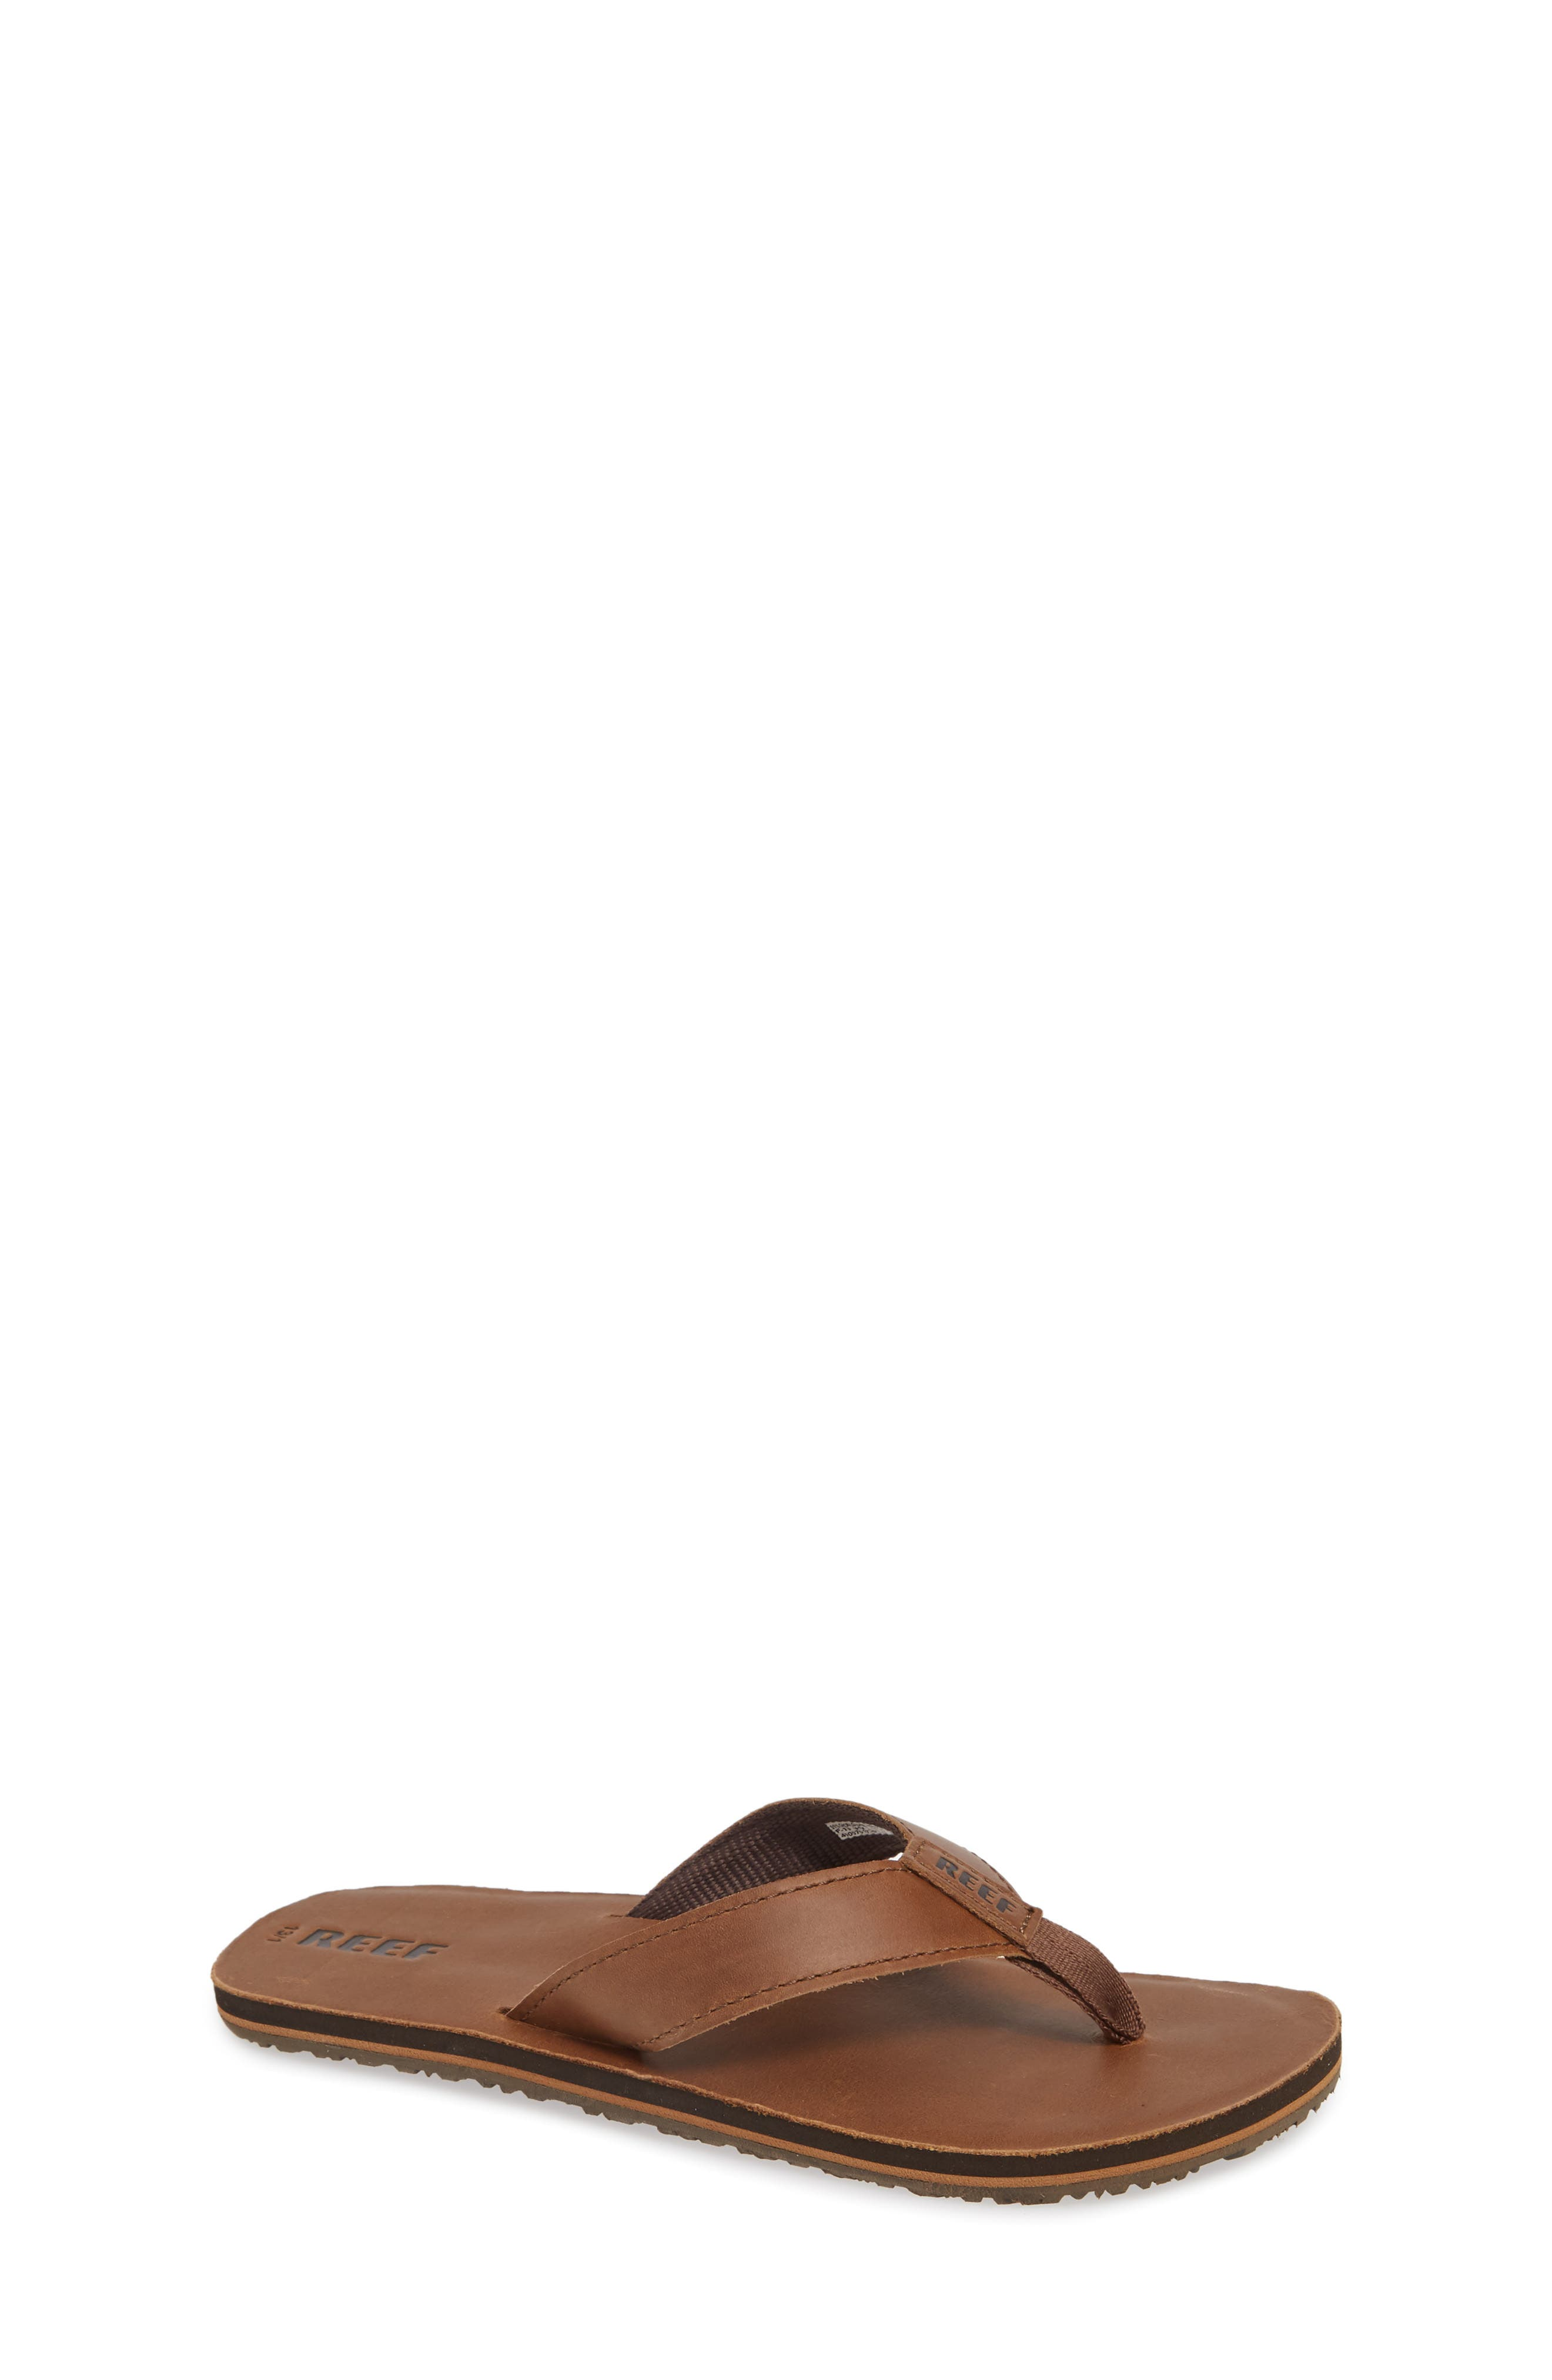 Smoothy Flip Flop,                         Main,                         color, BRONZE BROWN